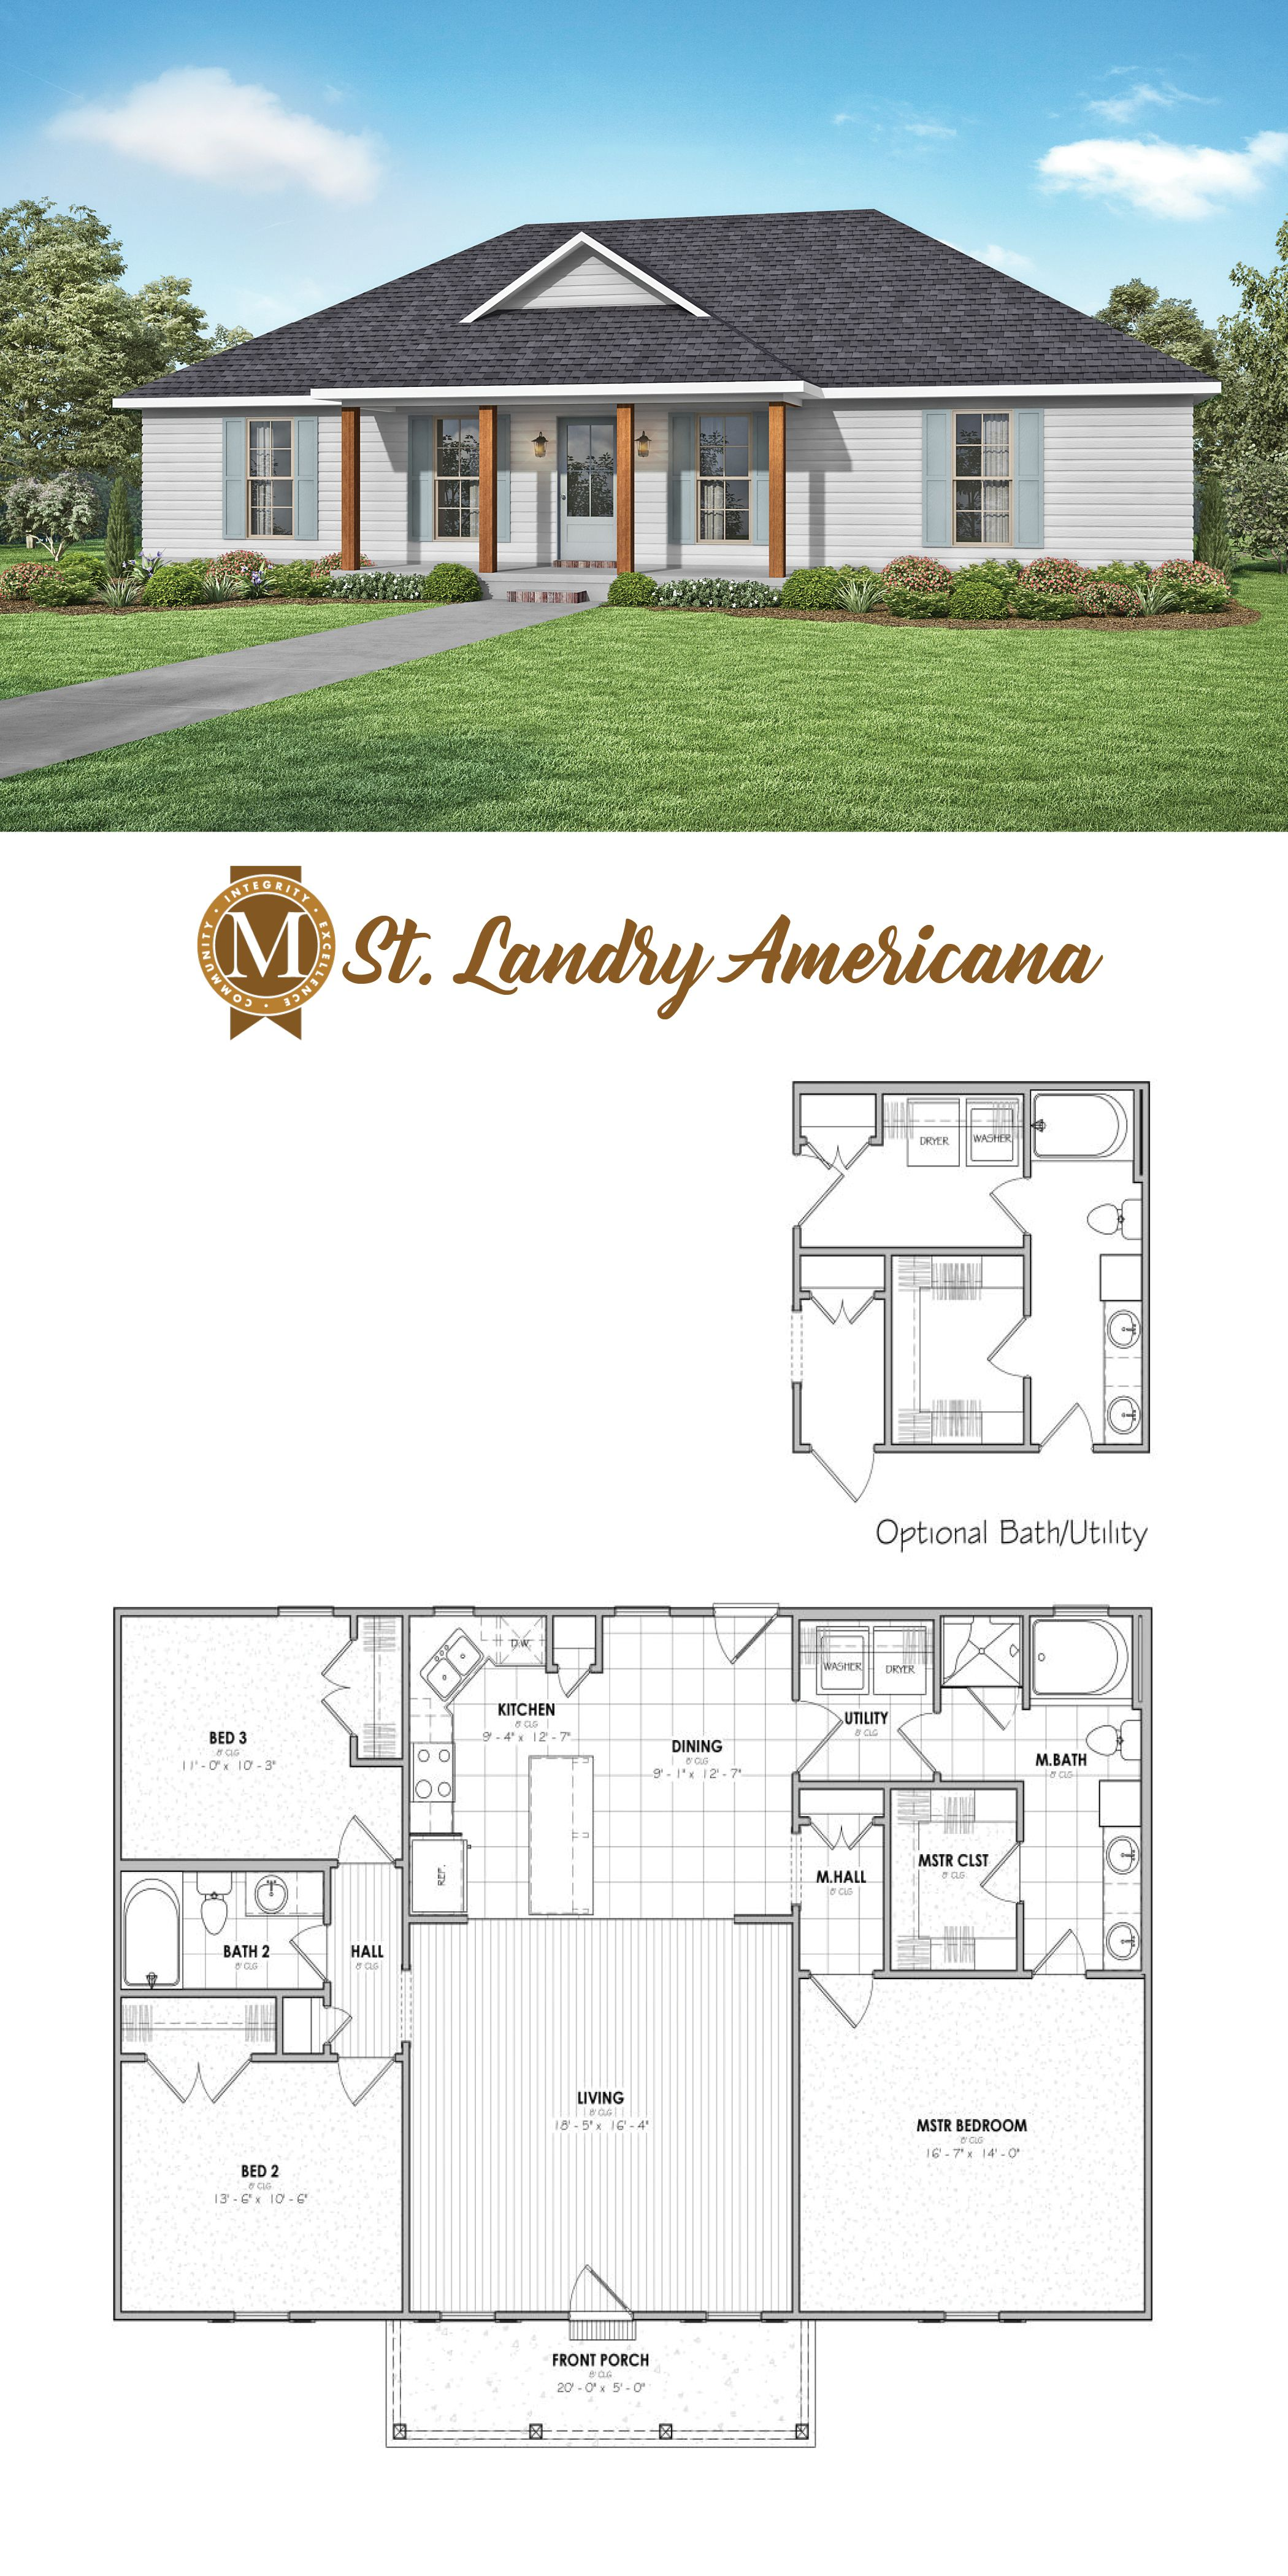 St Landry Americana Floor Plan House Plans Farmhouse Small House Plans Dream House Plans